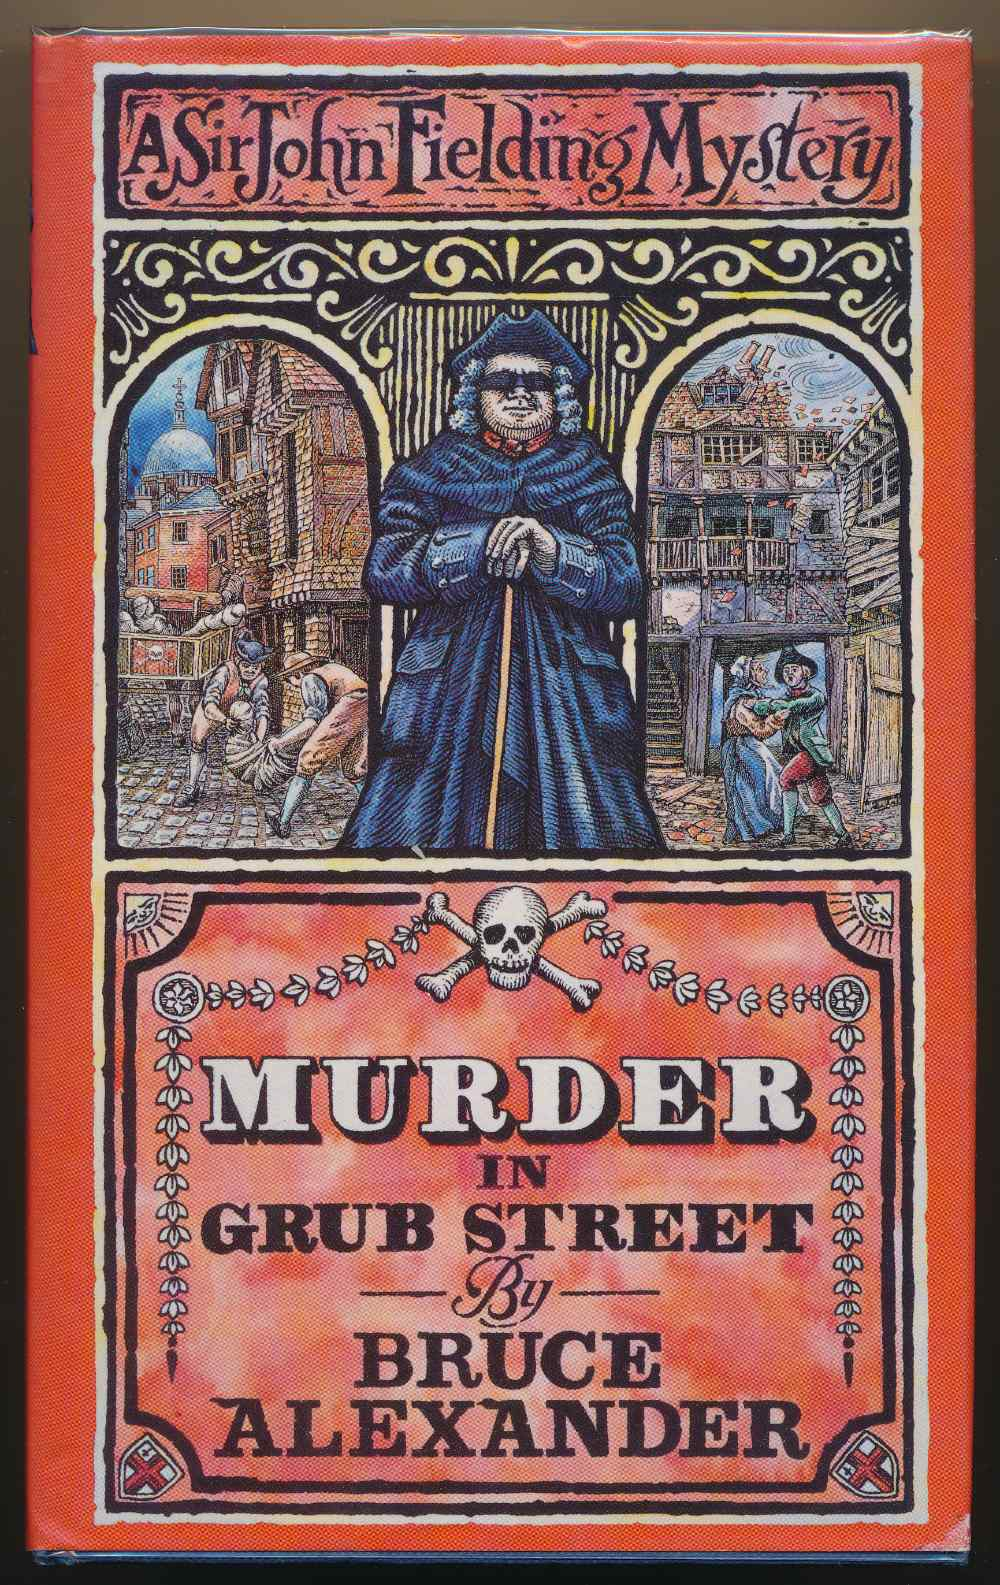 Murder in Grub Street